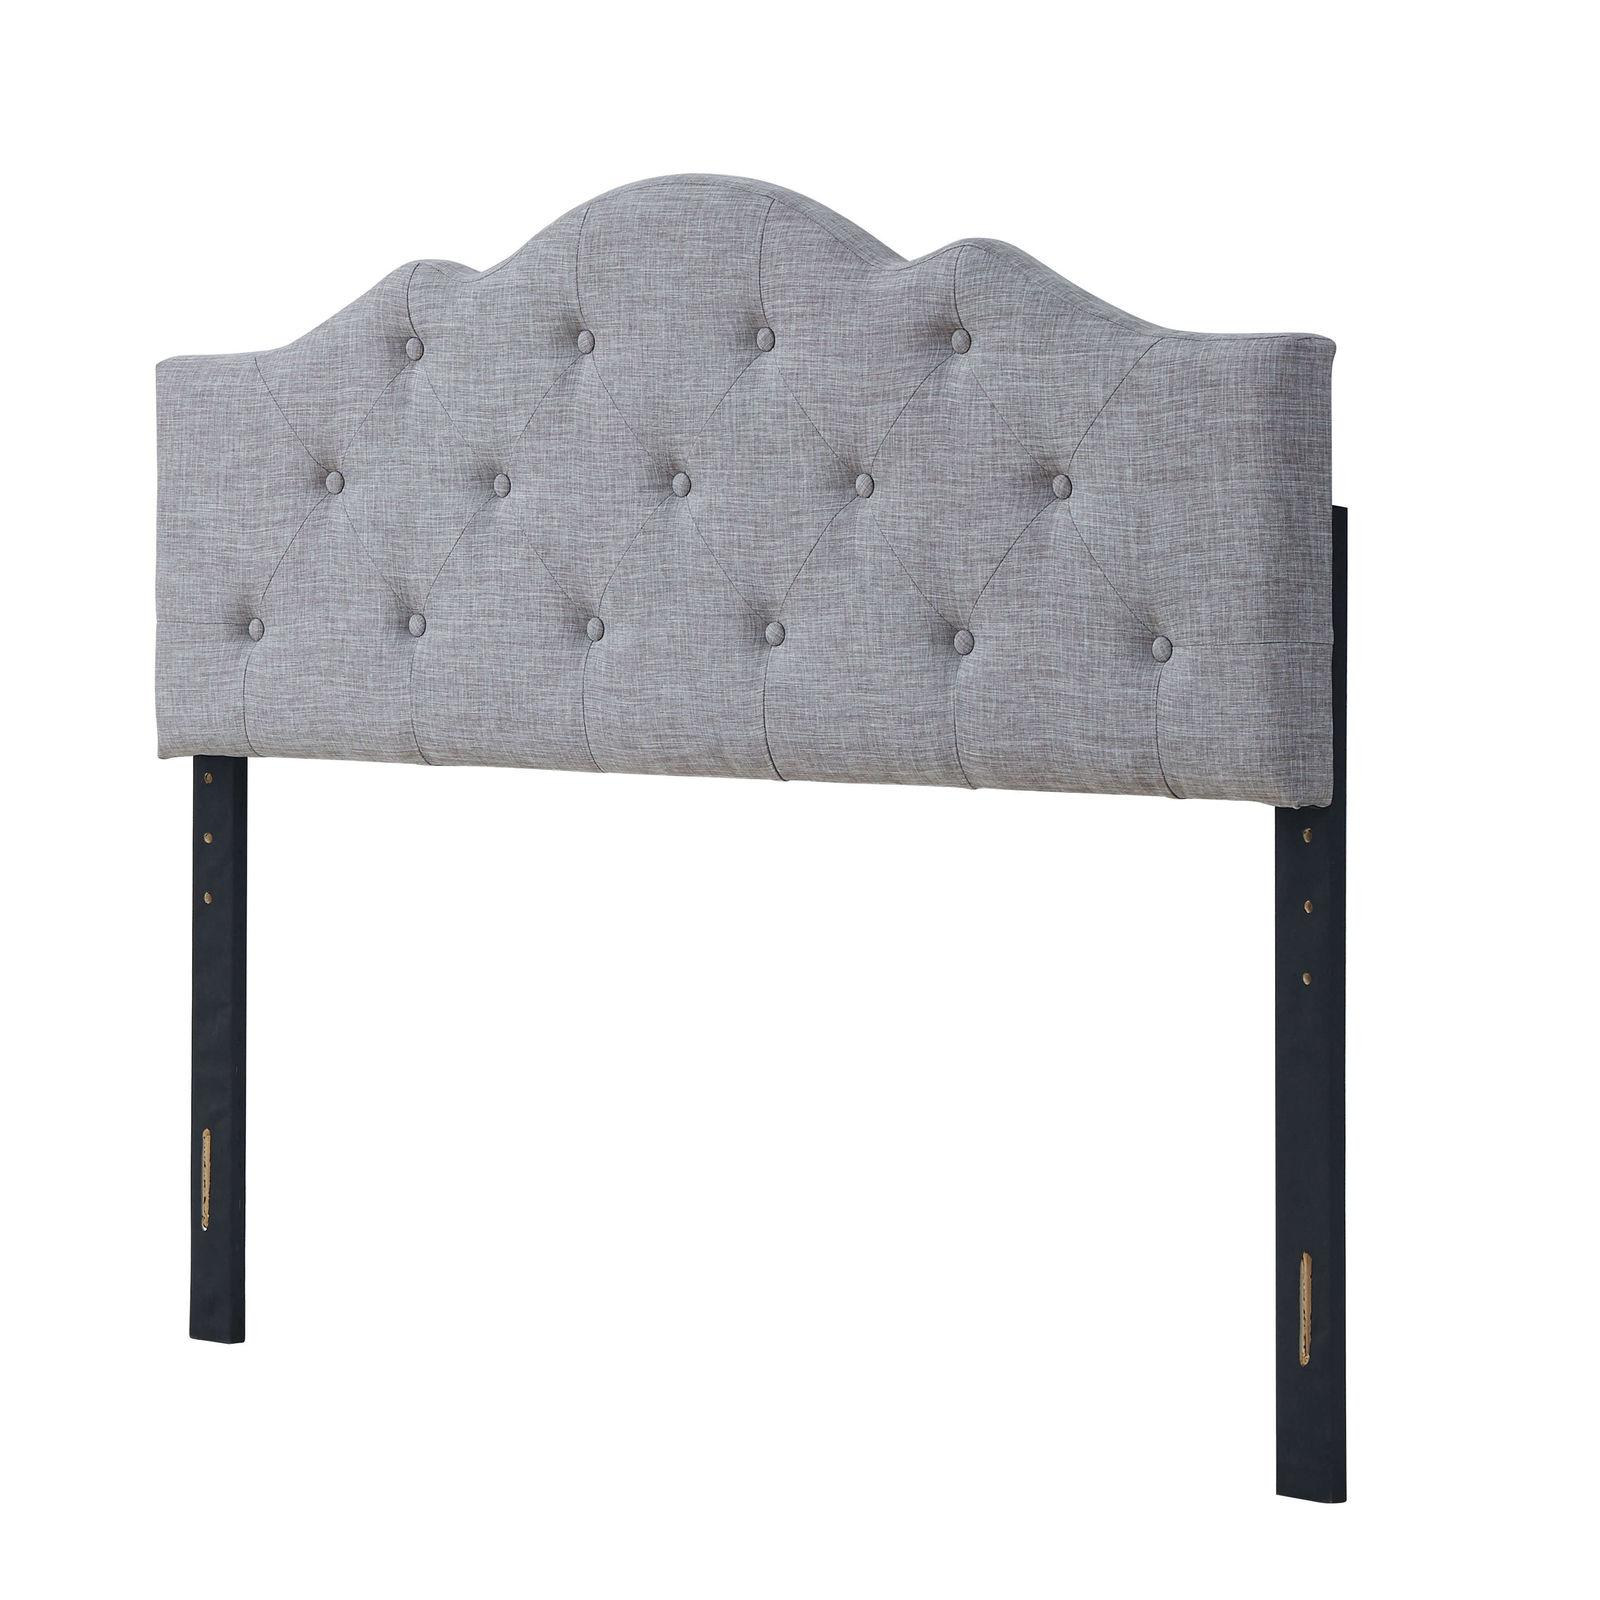 Upholstered Tufted Rounded Headboard Twin Full Queen King Si